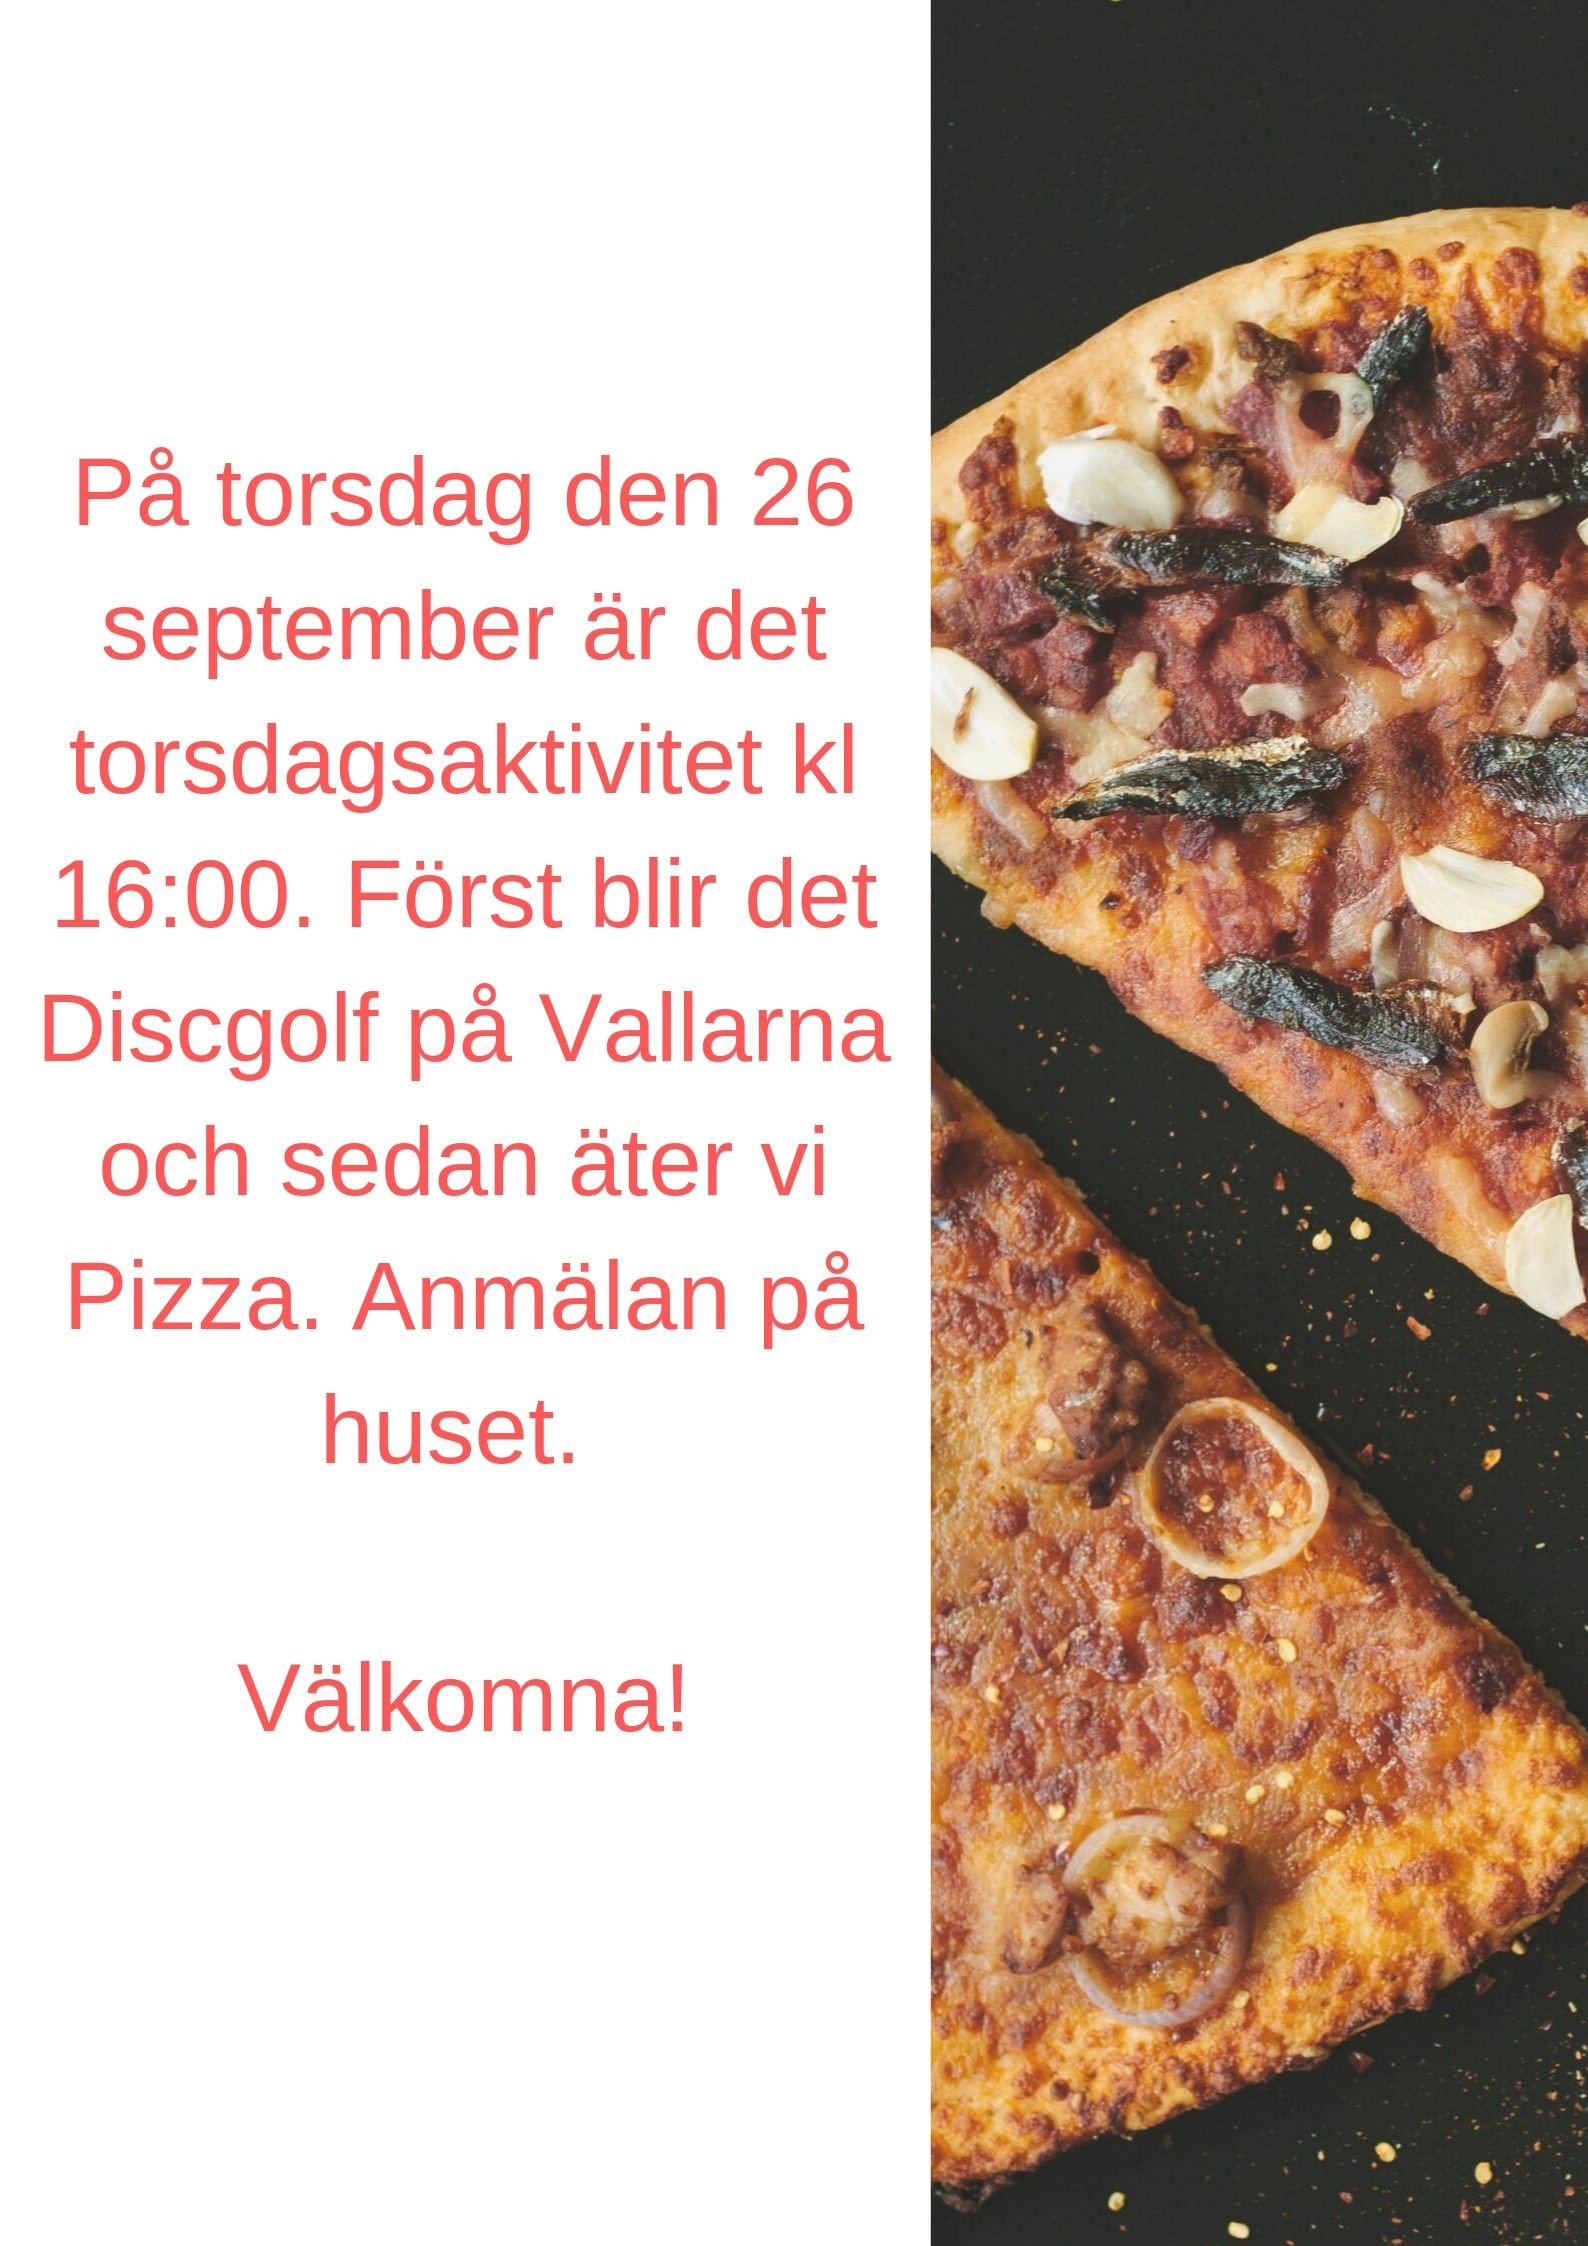 Torsdagsaktivitet 26 september!